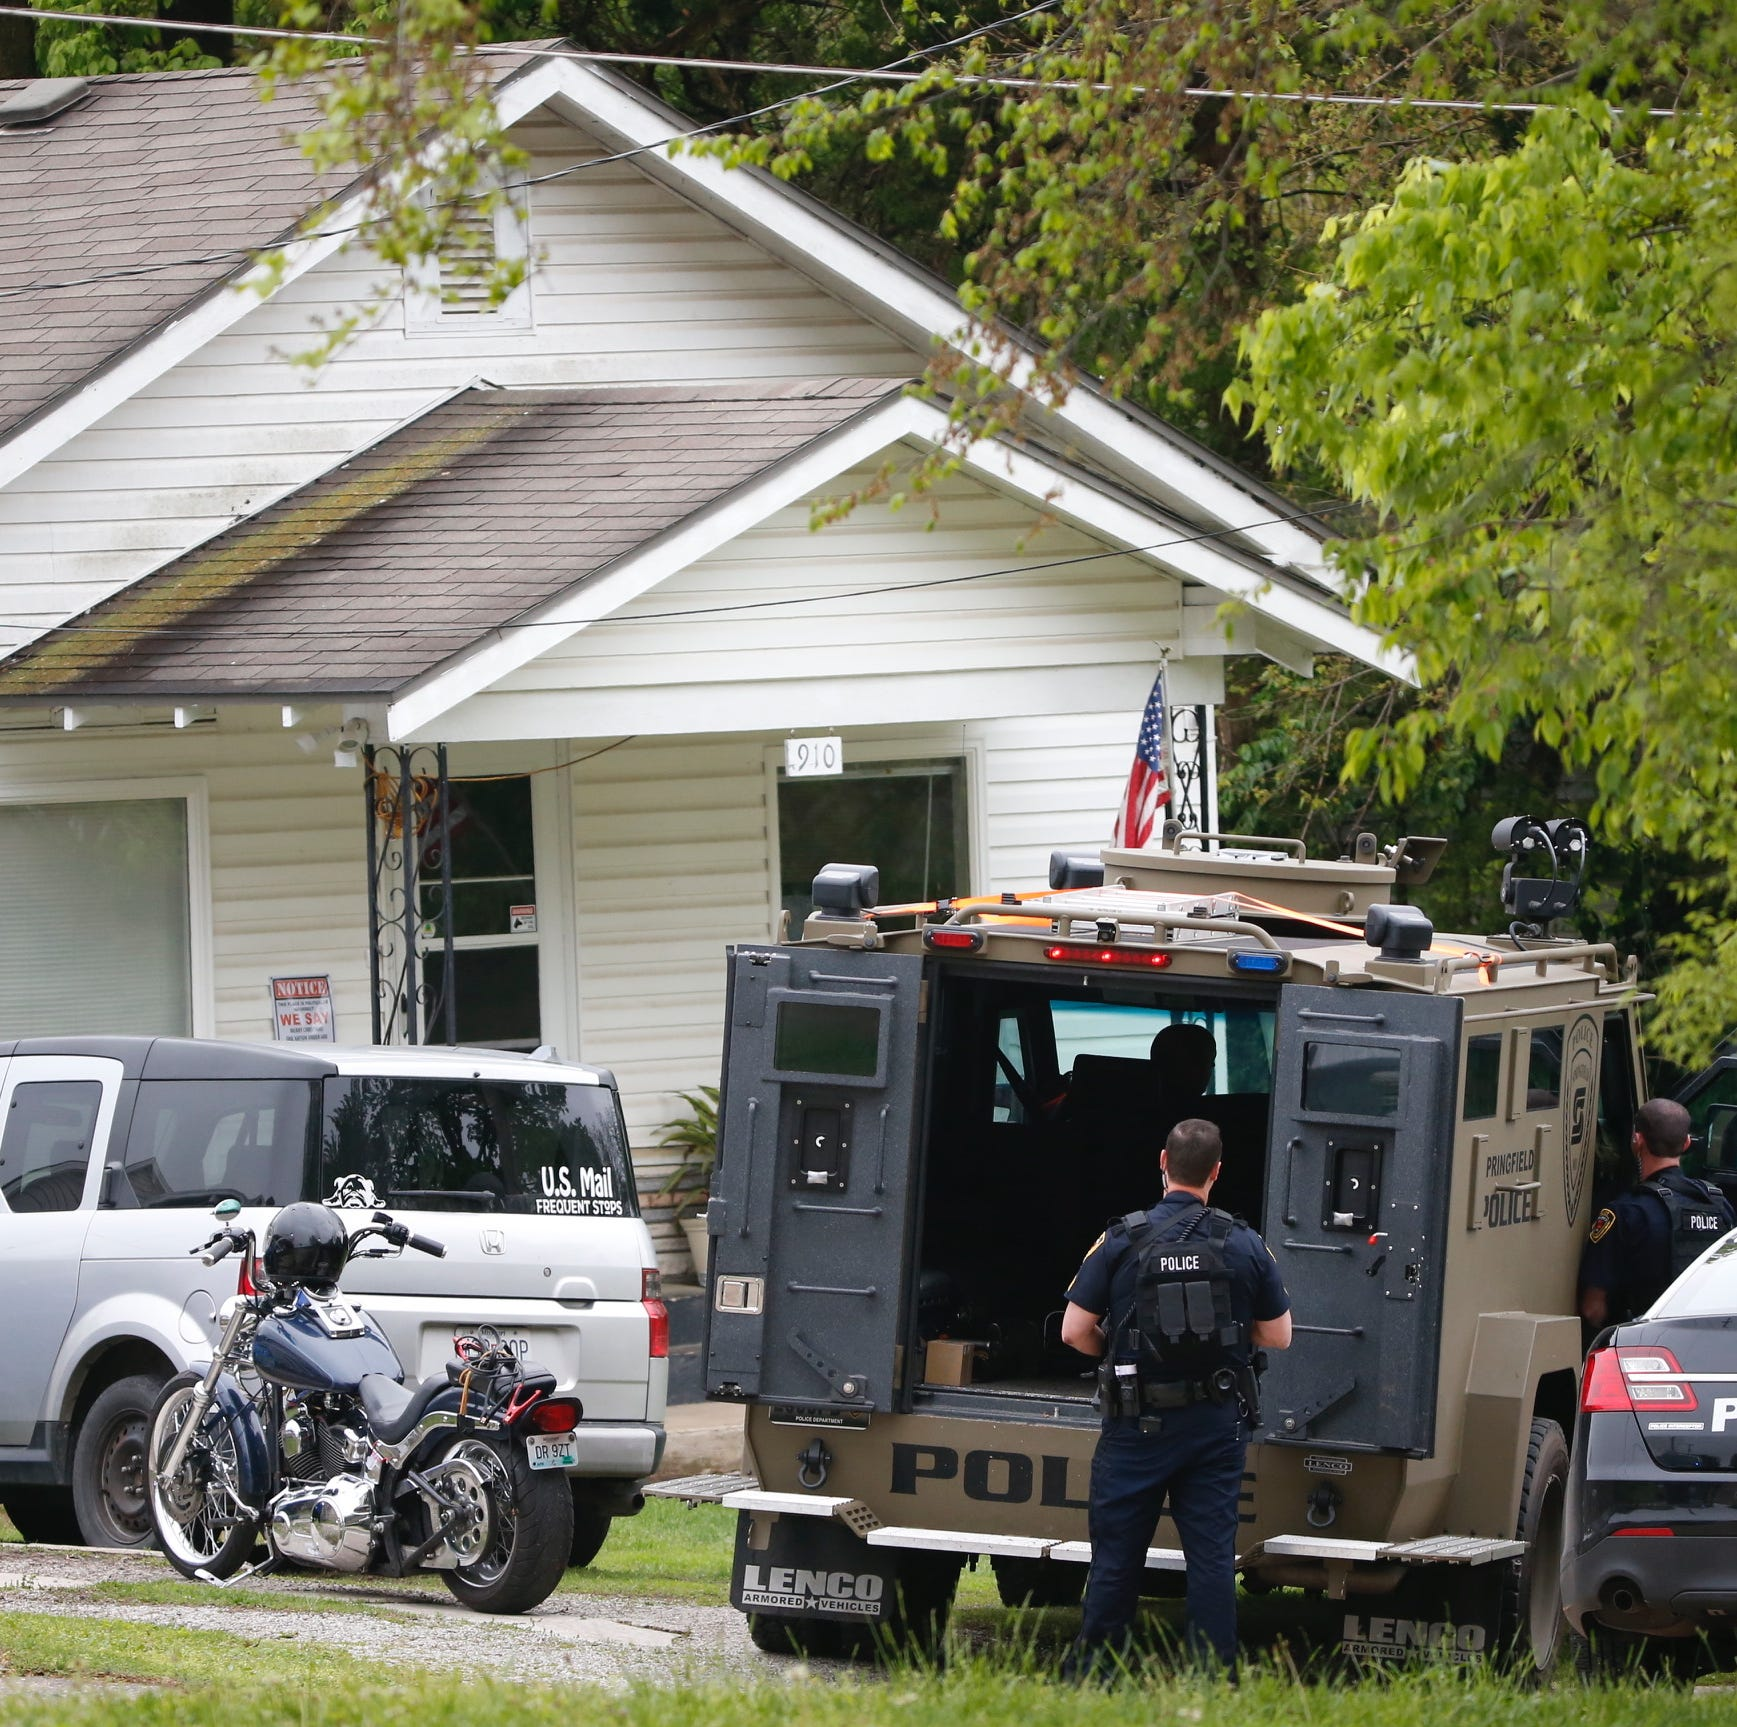 Large police presence in Springfield neighborhood to execute warrant